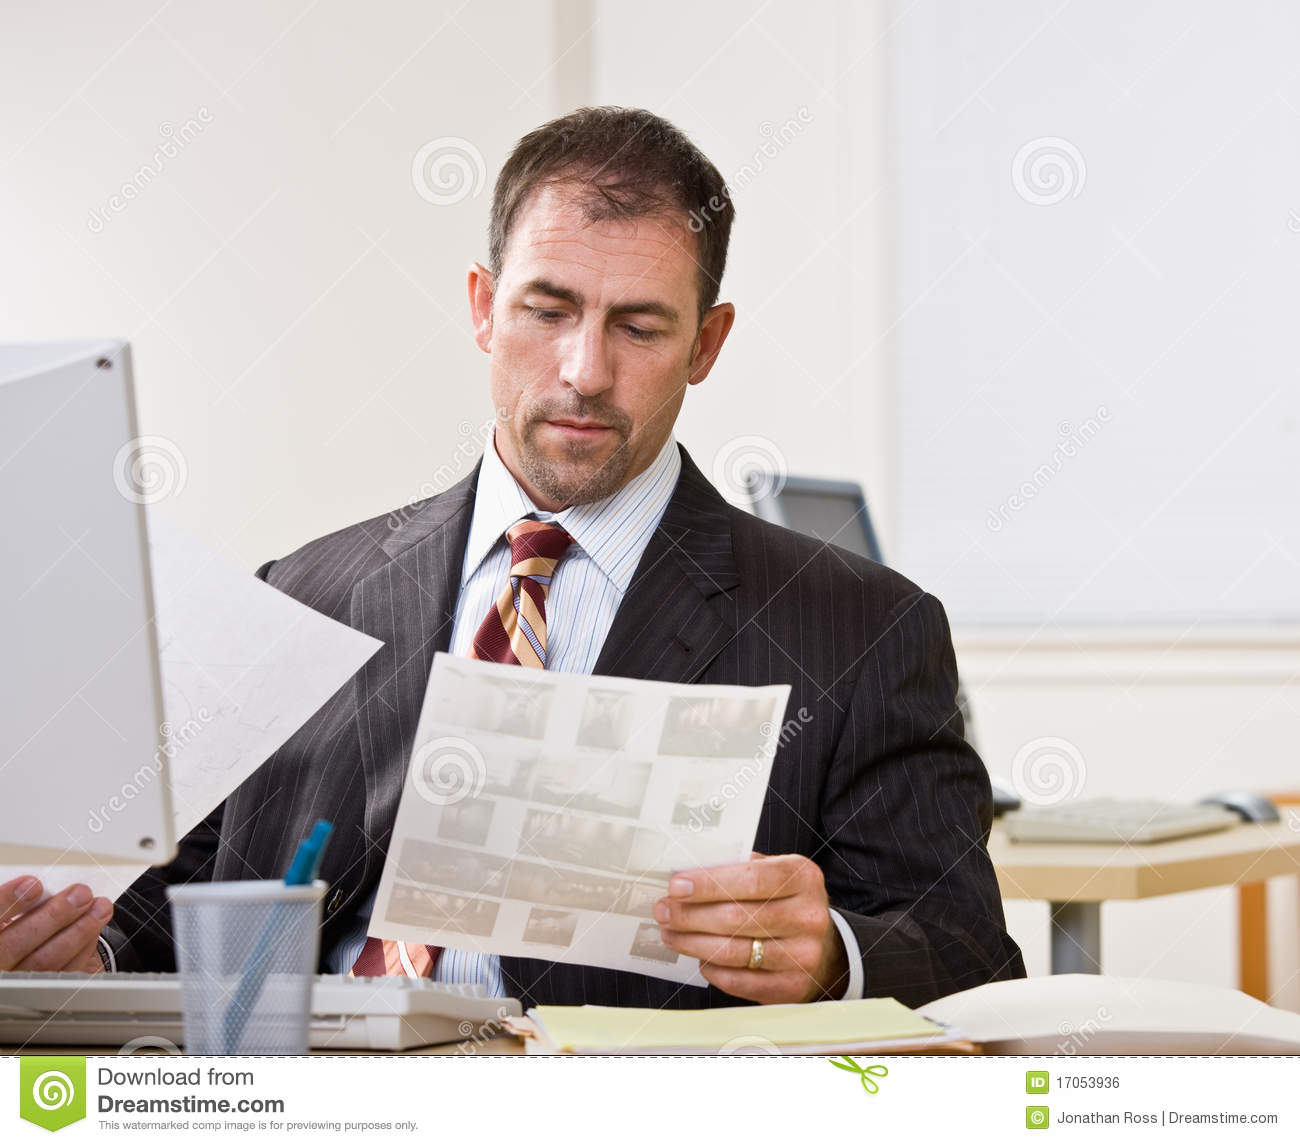 Businessman Reviewing Paperwork Royalty Free Stock Image - Image